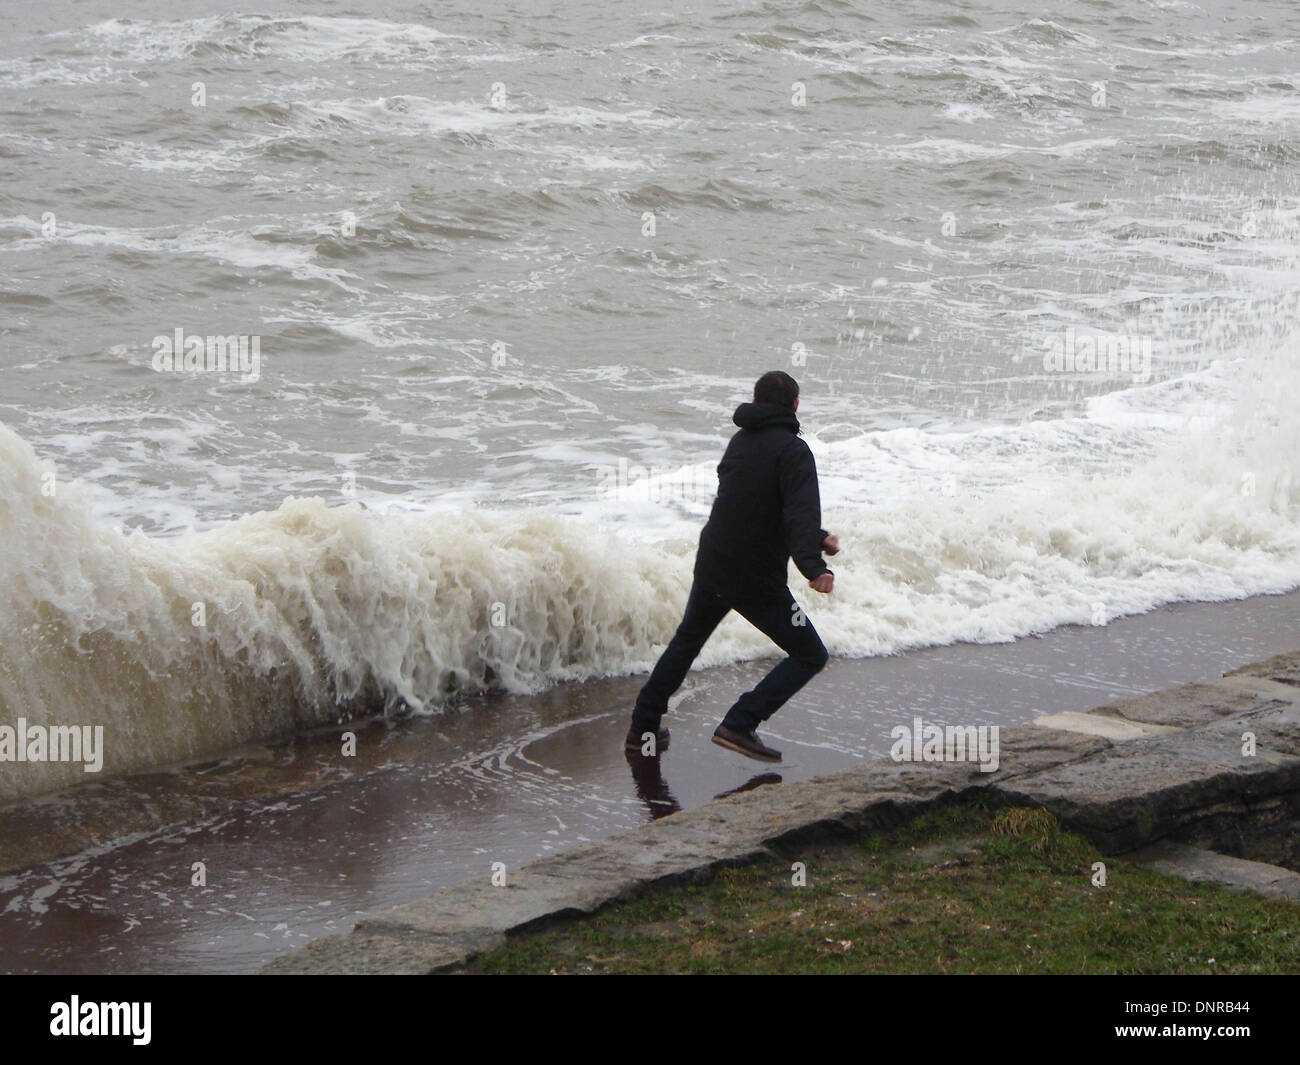 portsmouth-england-4th-january-2014-a-man-plays-chicken-with-waves-DNRB44.jpg